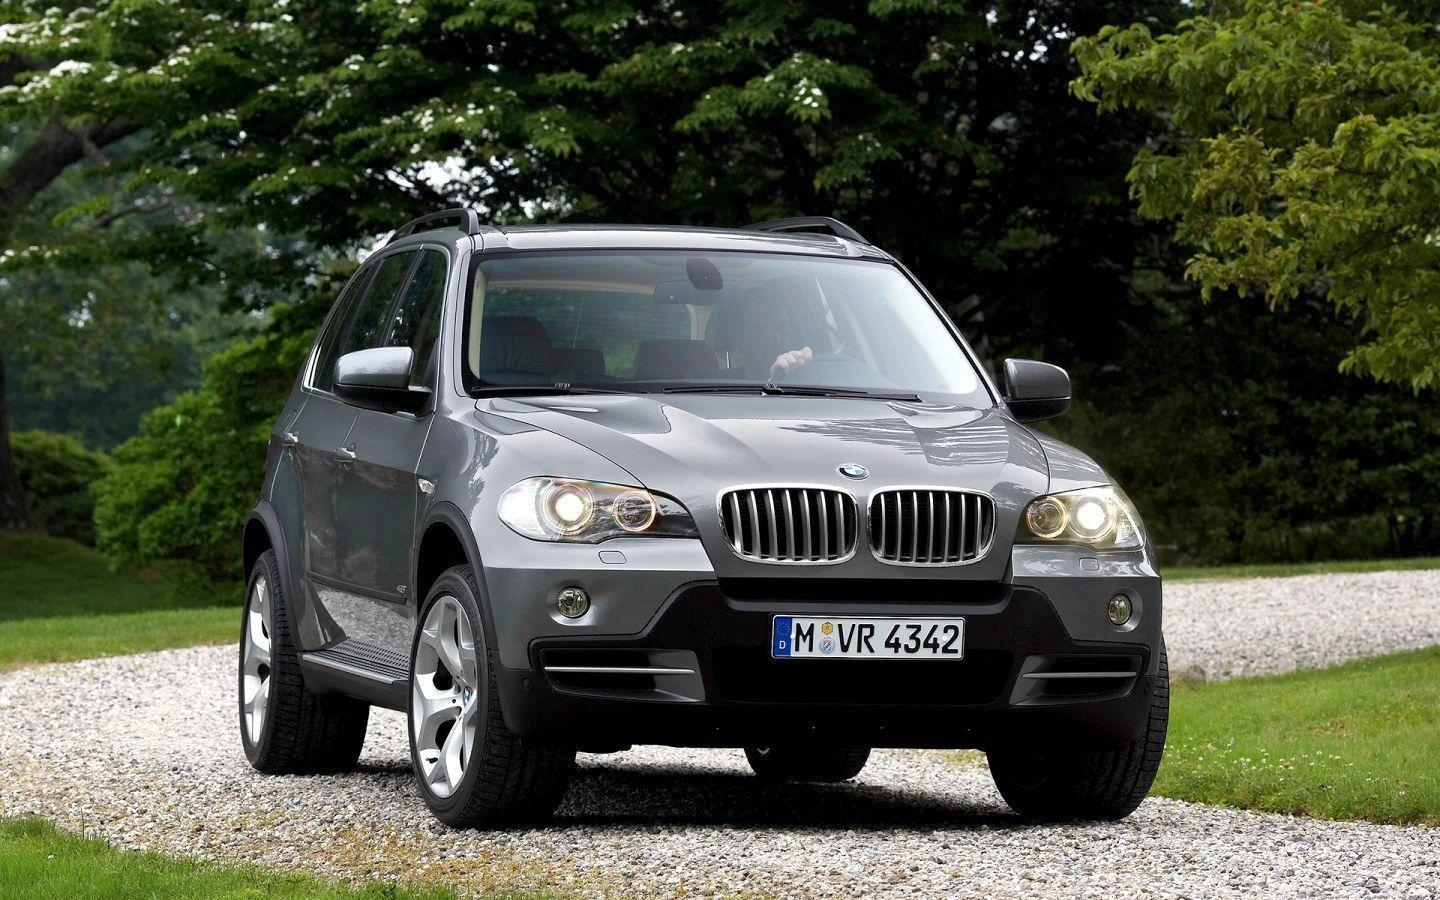 2007 BMW X5 Wallpaper 16 - 1440x900